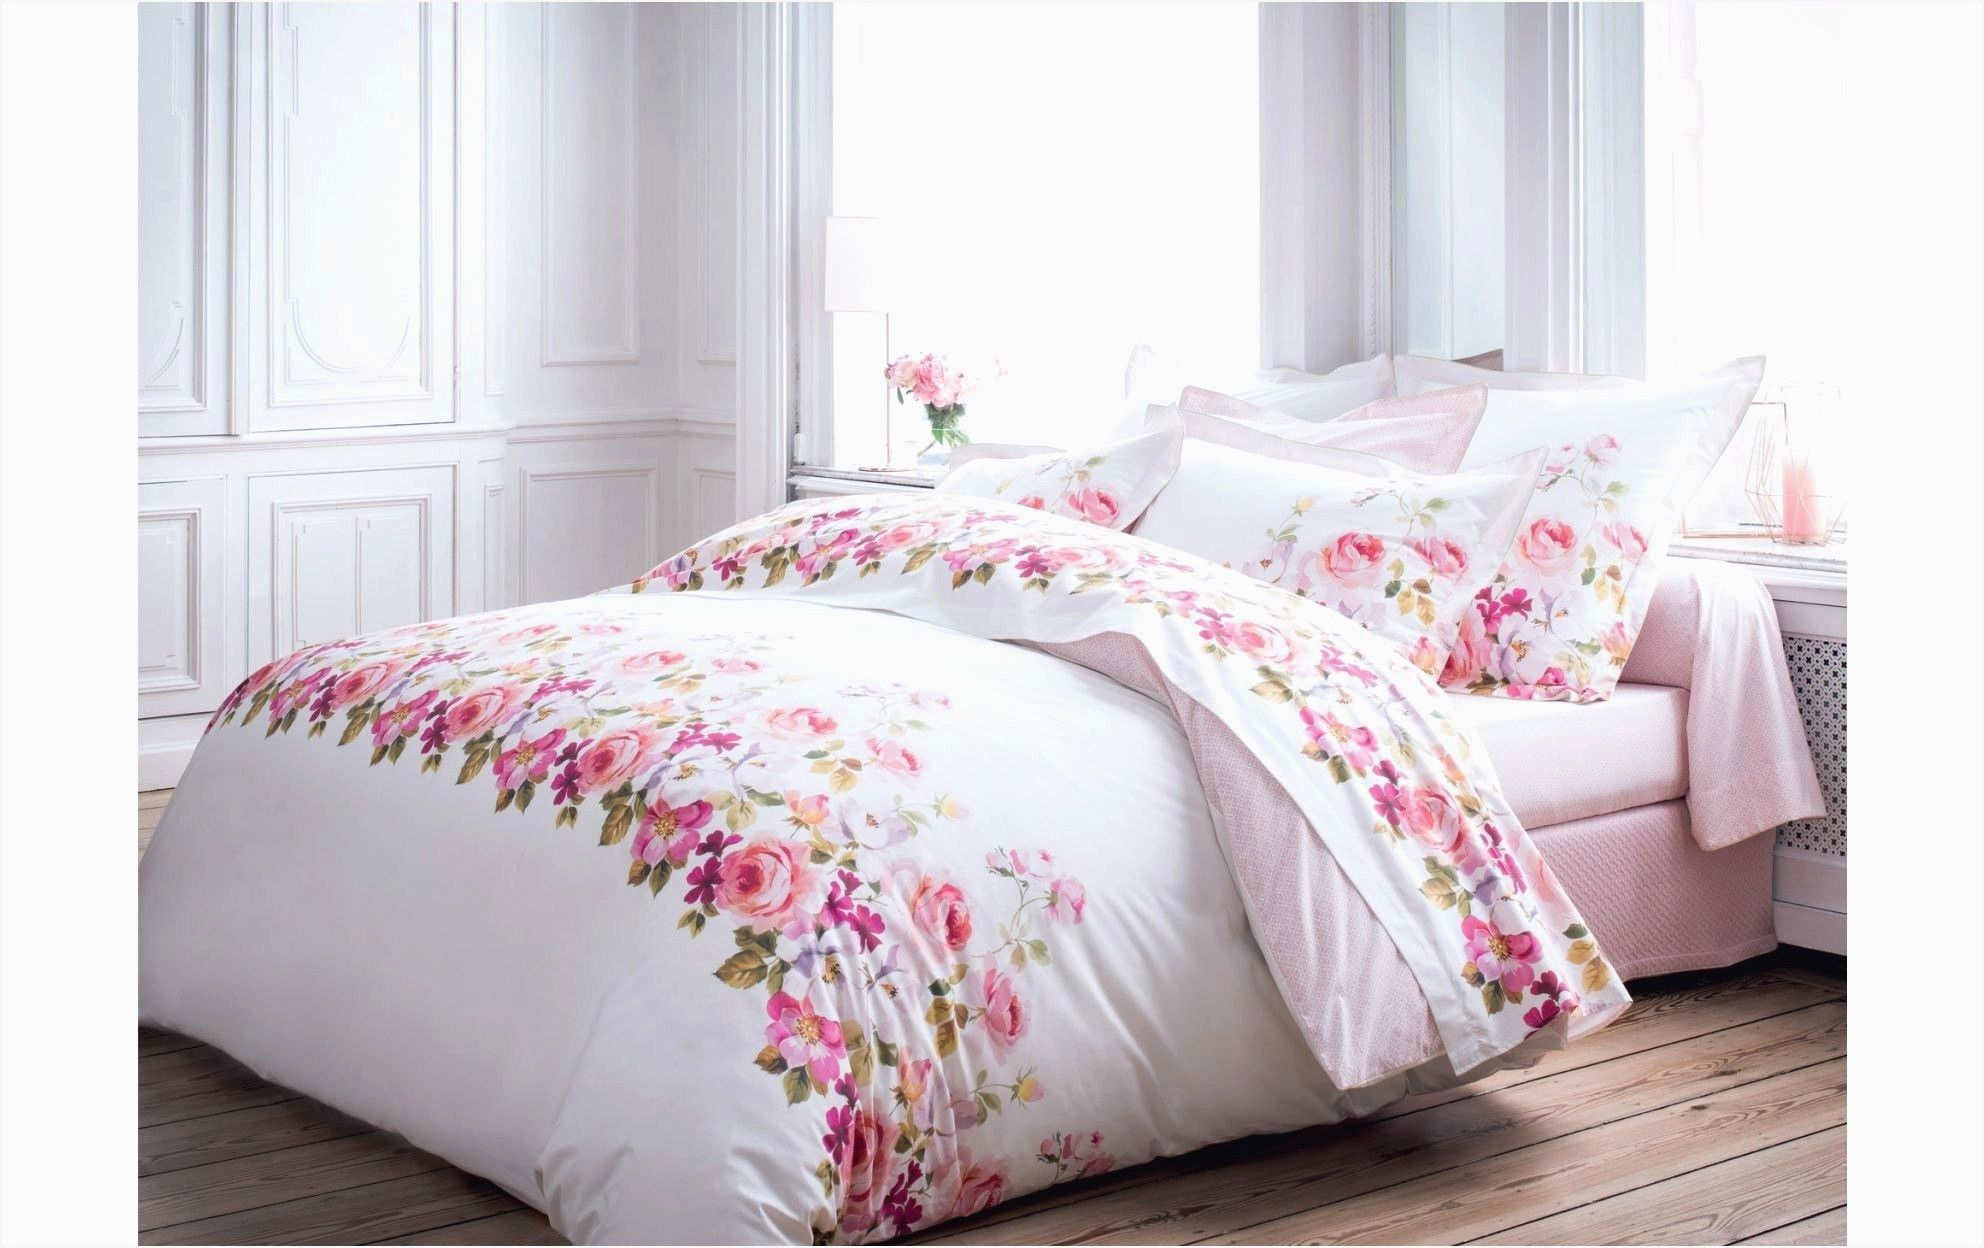 Elegant Dimension Couette Ikea Bed Luxury Linen Luxury Bedding